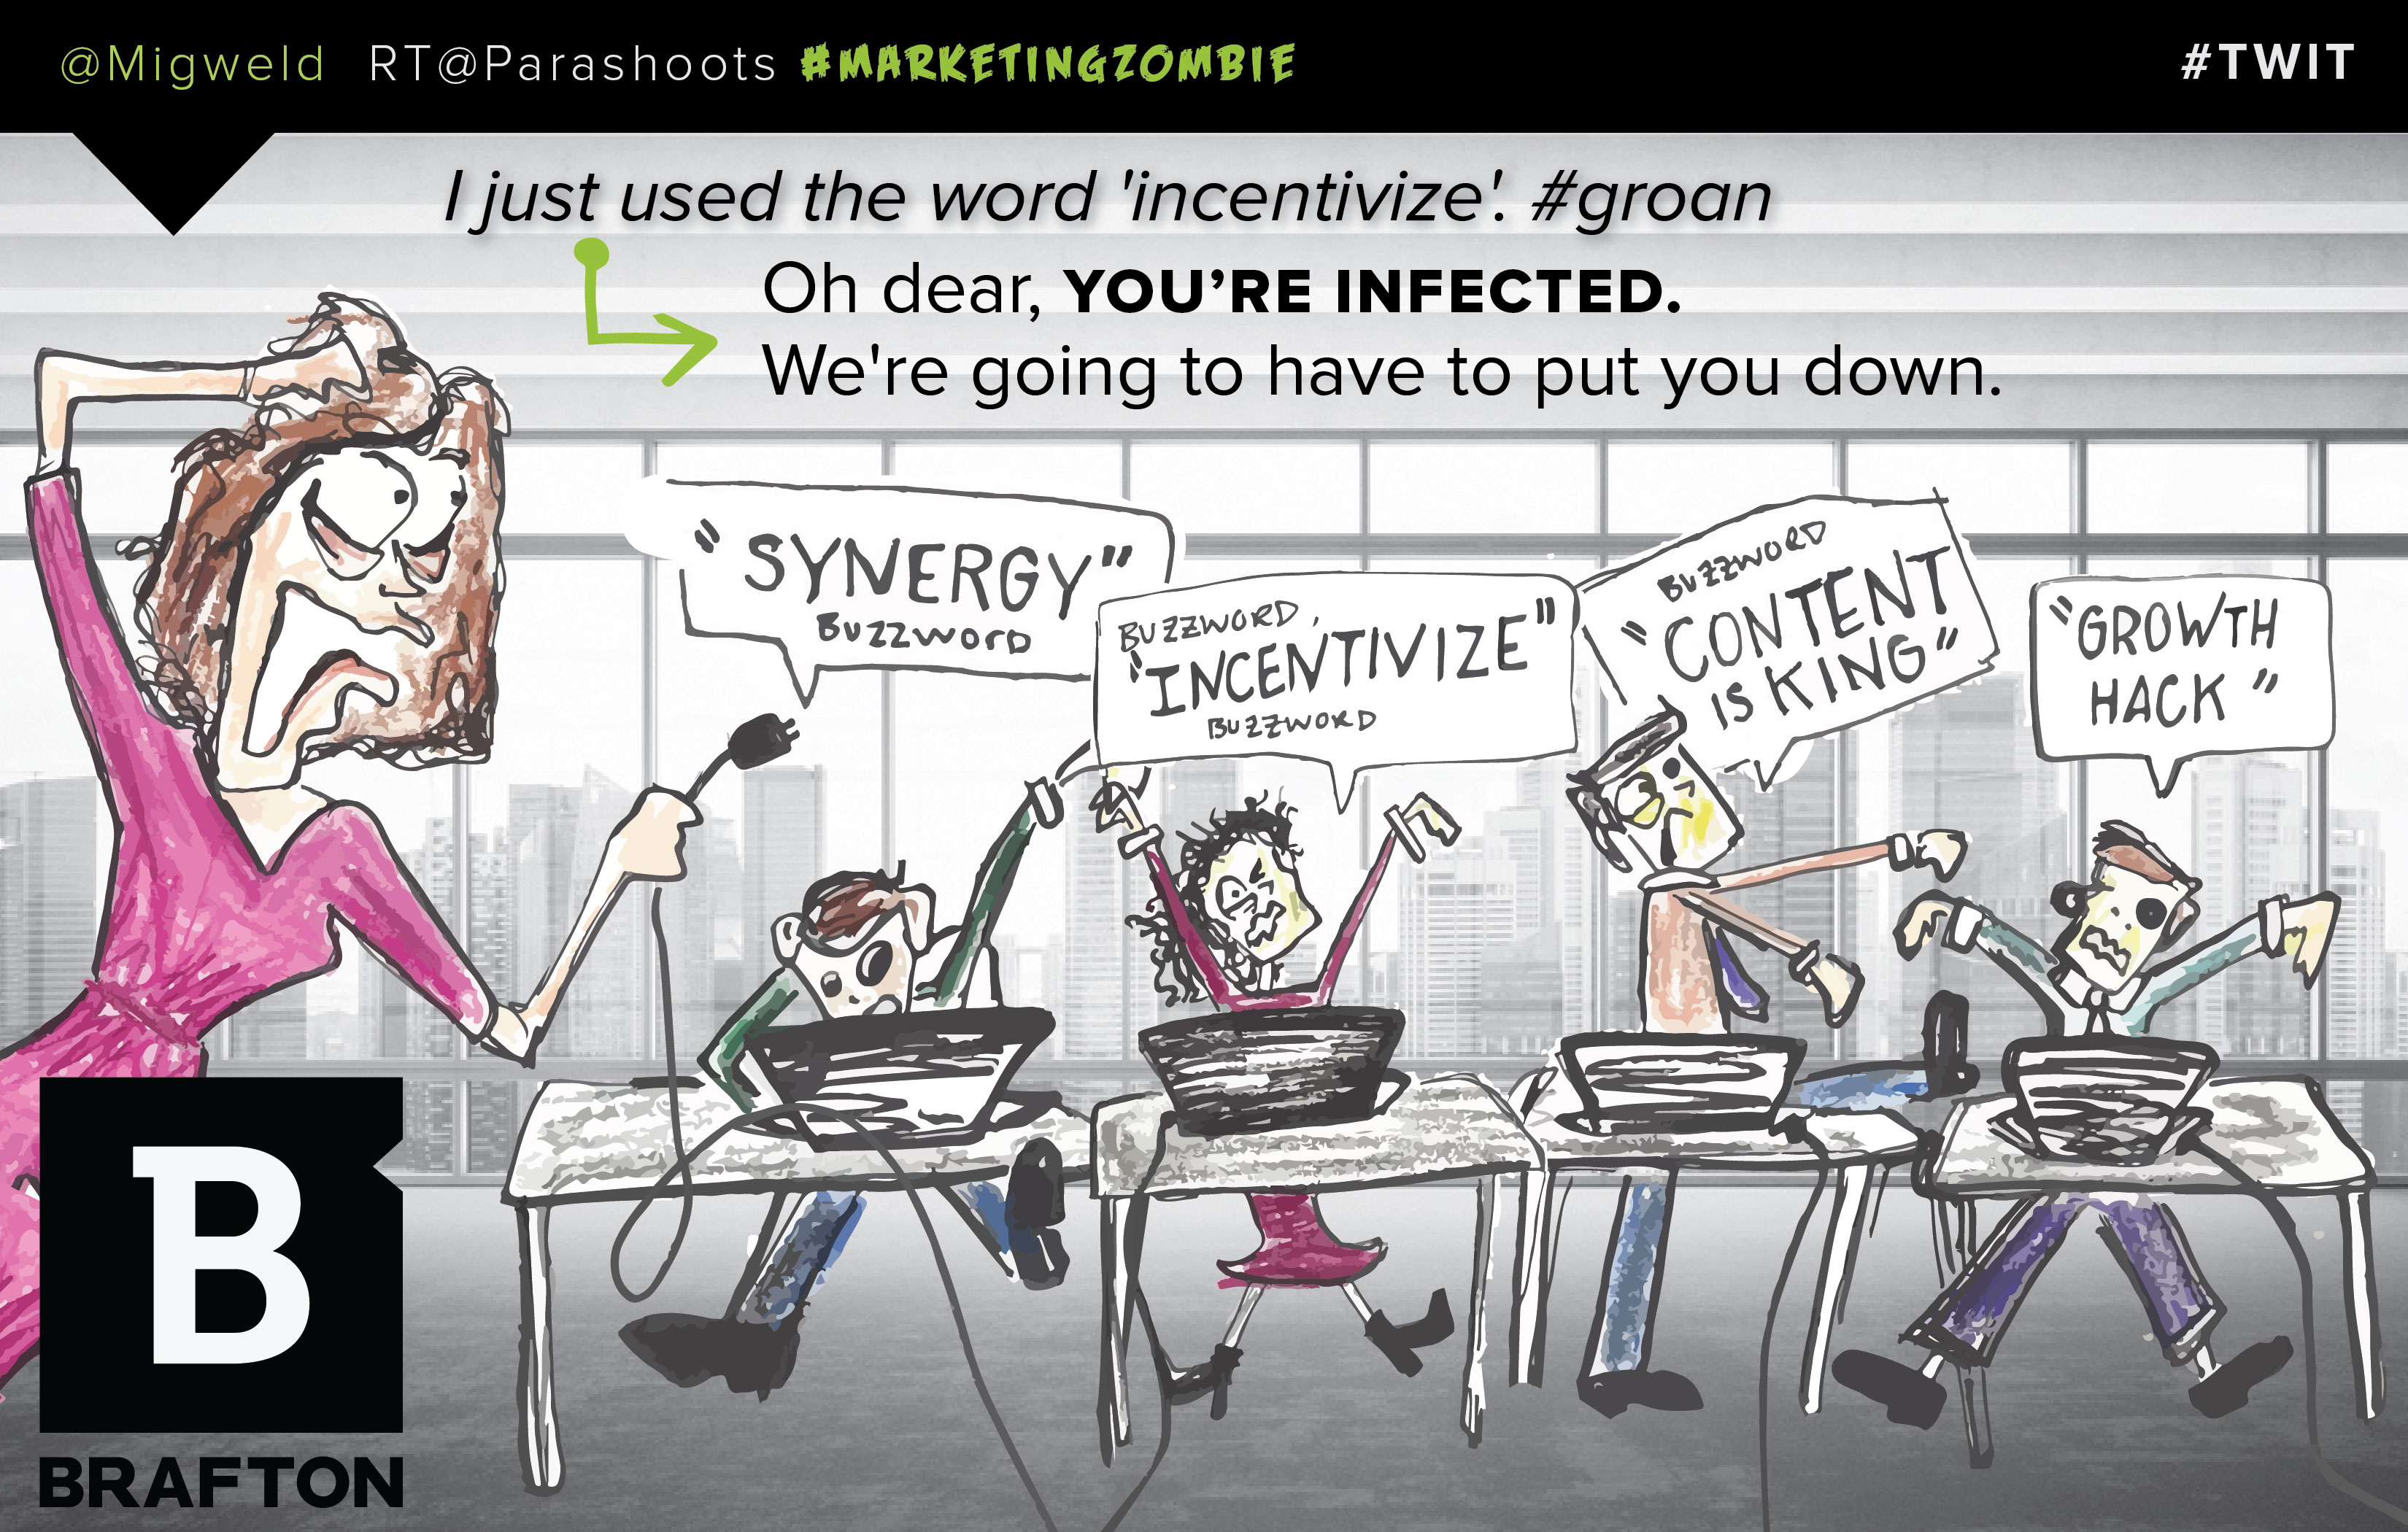 Adding too many buzzwords may incentivize your marketing synergy to become a zombie! See our illustrated Tweet for more. Marketing #TWIT